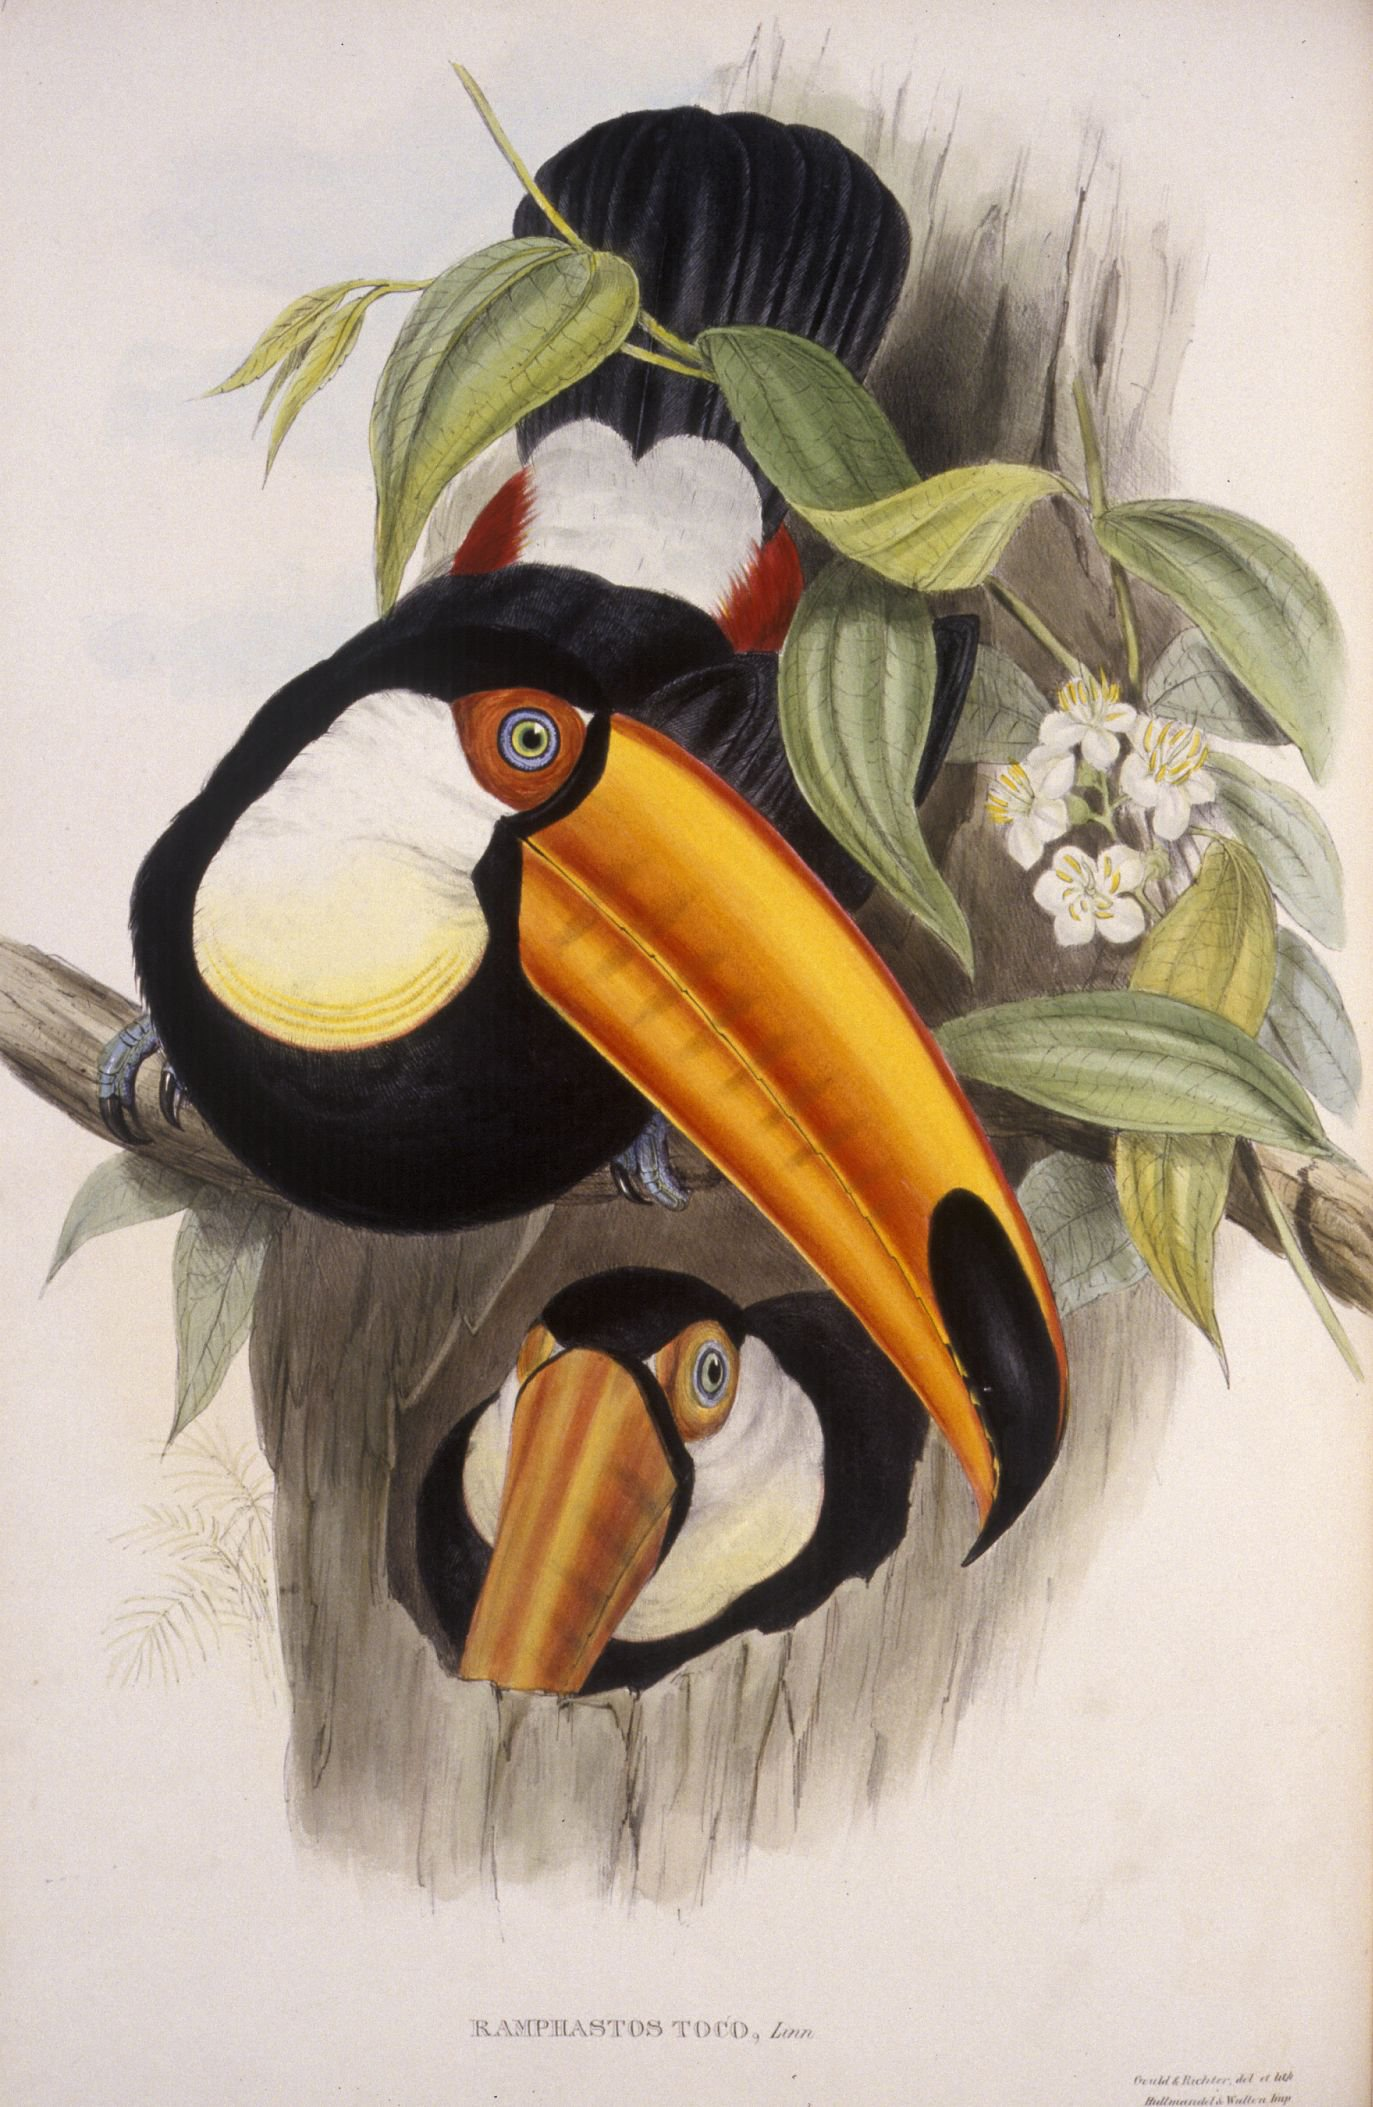 Ramphastos Toco, (Toco toucan) from A Monograph of the Ramphastidæ, or Family of Toucans, 1854 (2nd edition)